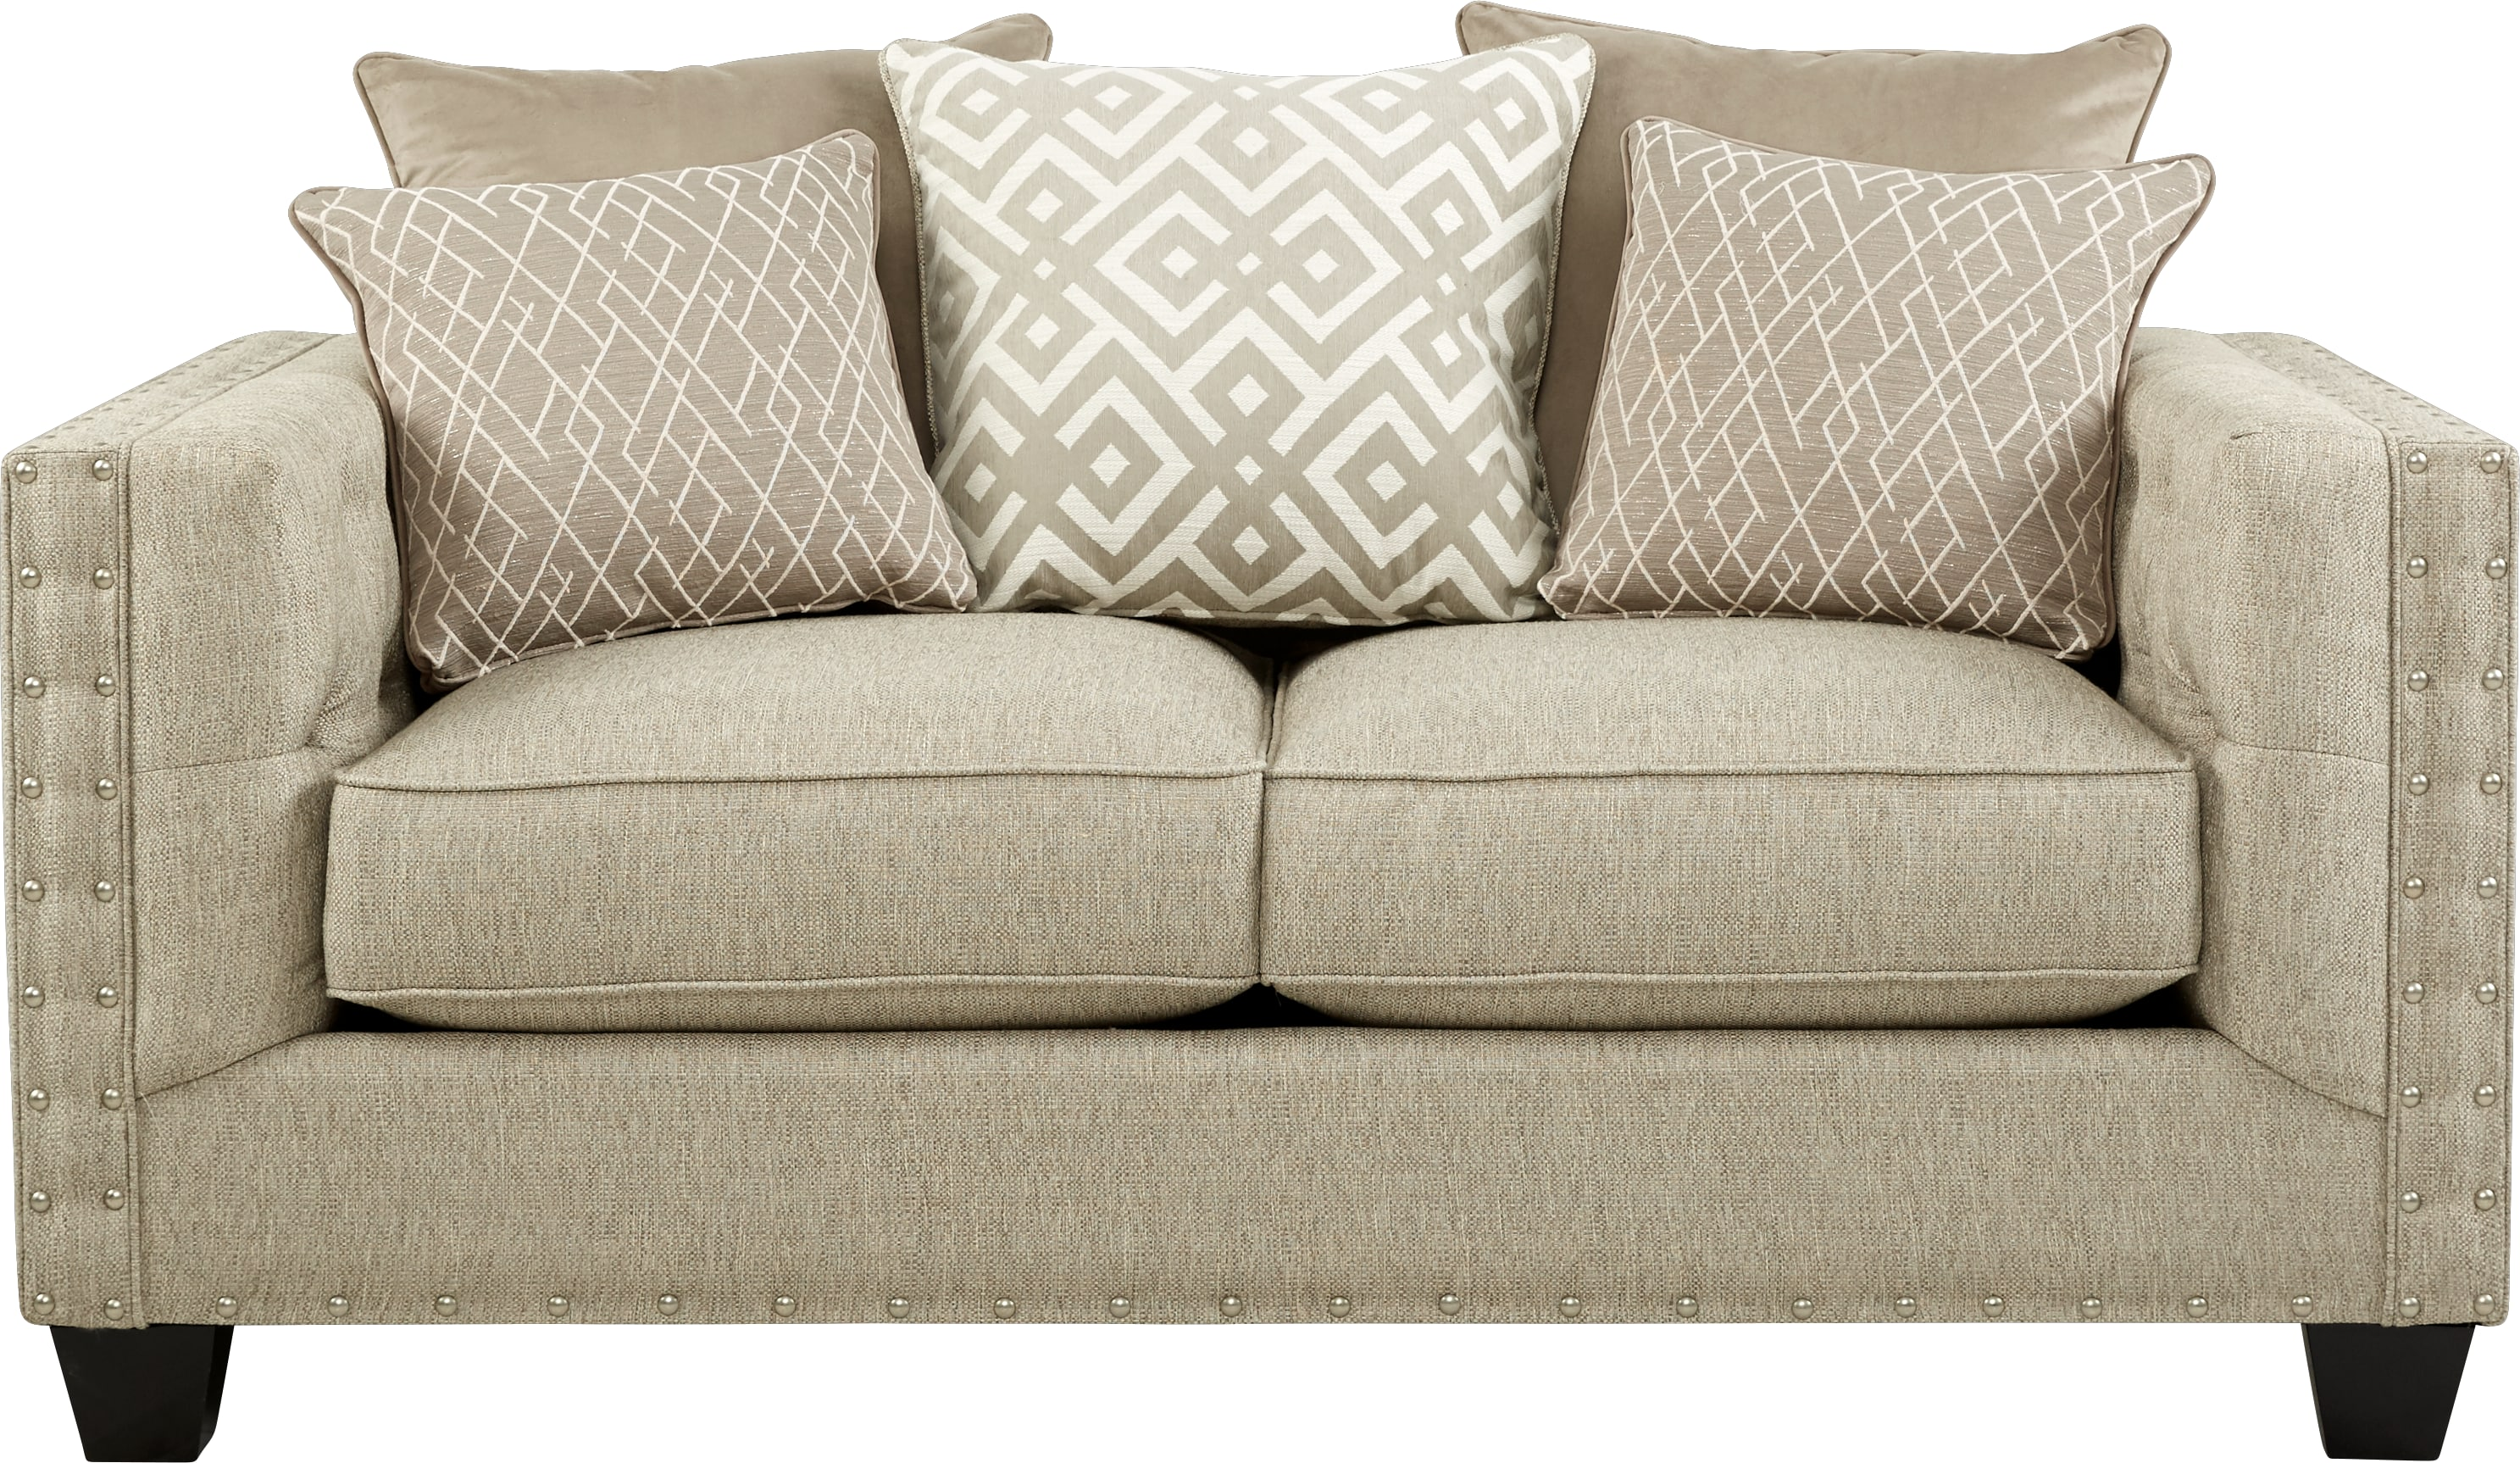 Beau Cindy Crawford Home Chelsea Hills Beige Loveseat